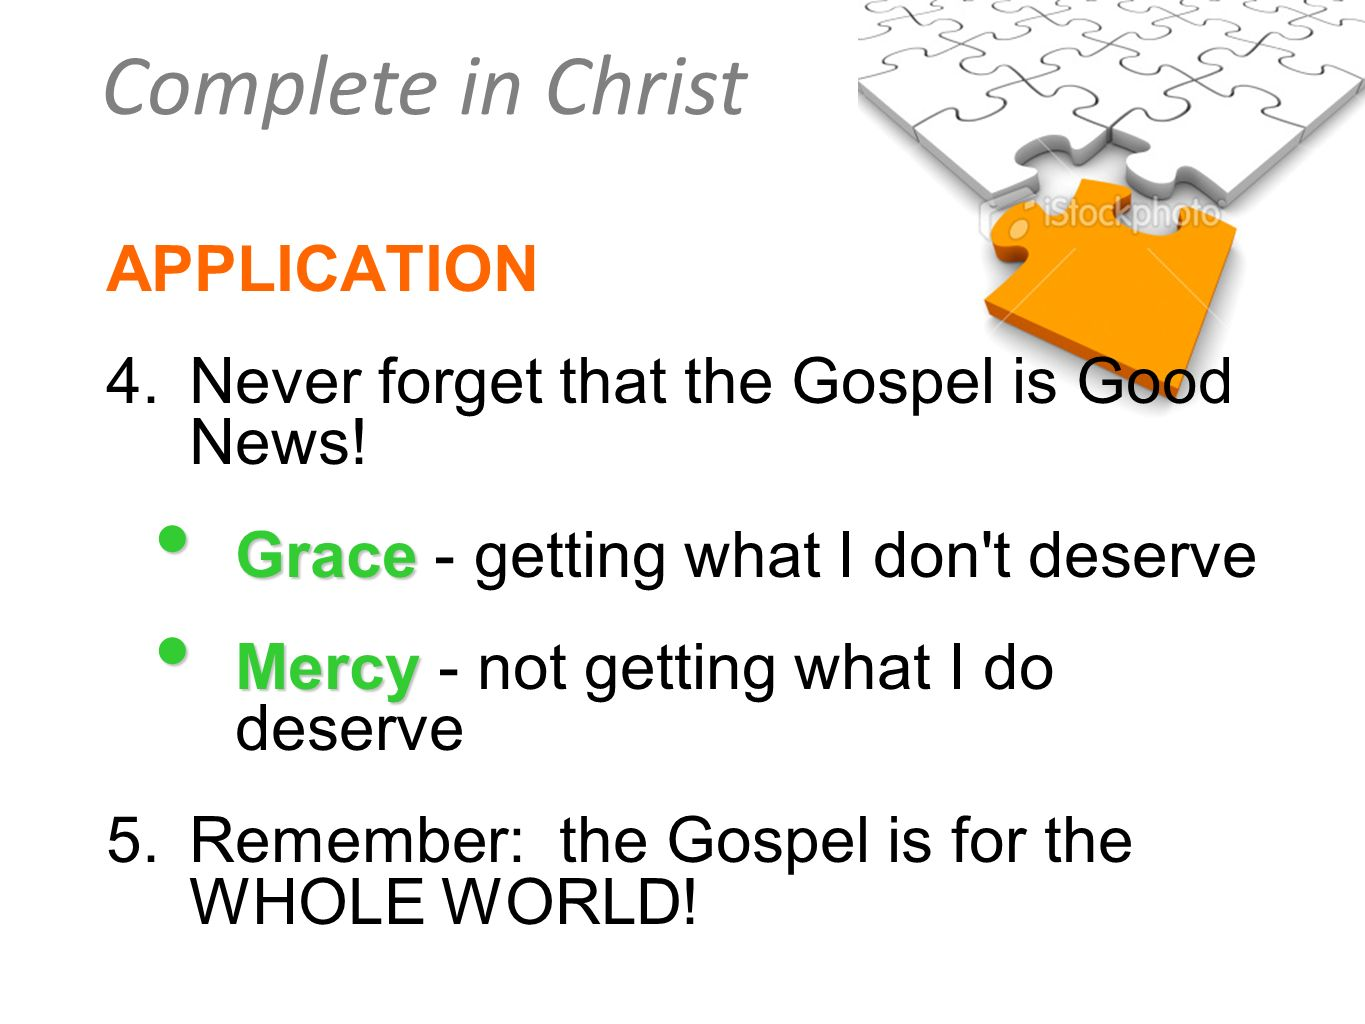 APPLICATION 4. Never forget that the Gospel is Good News! Grace - getting what I don t deserve. Mercy - not getting what I do deserve.